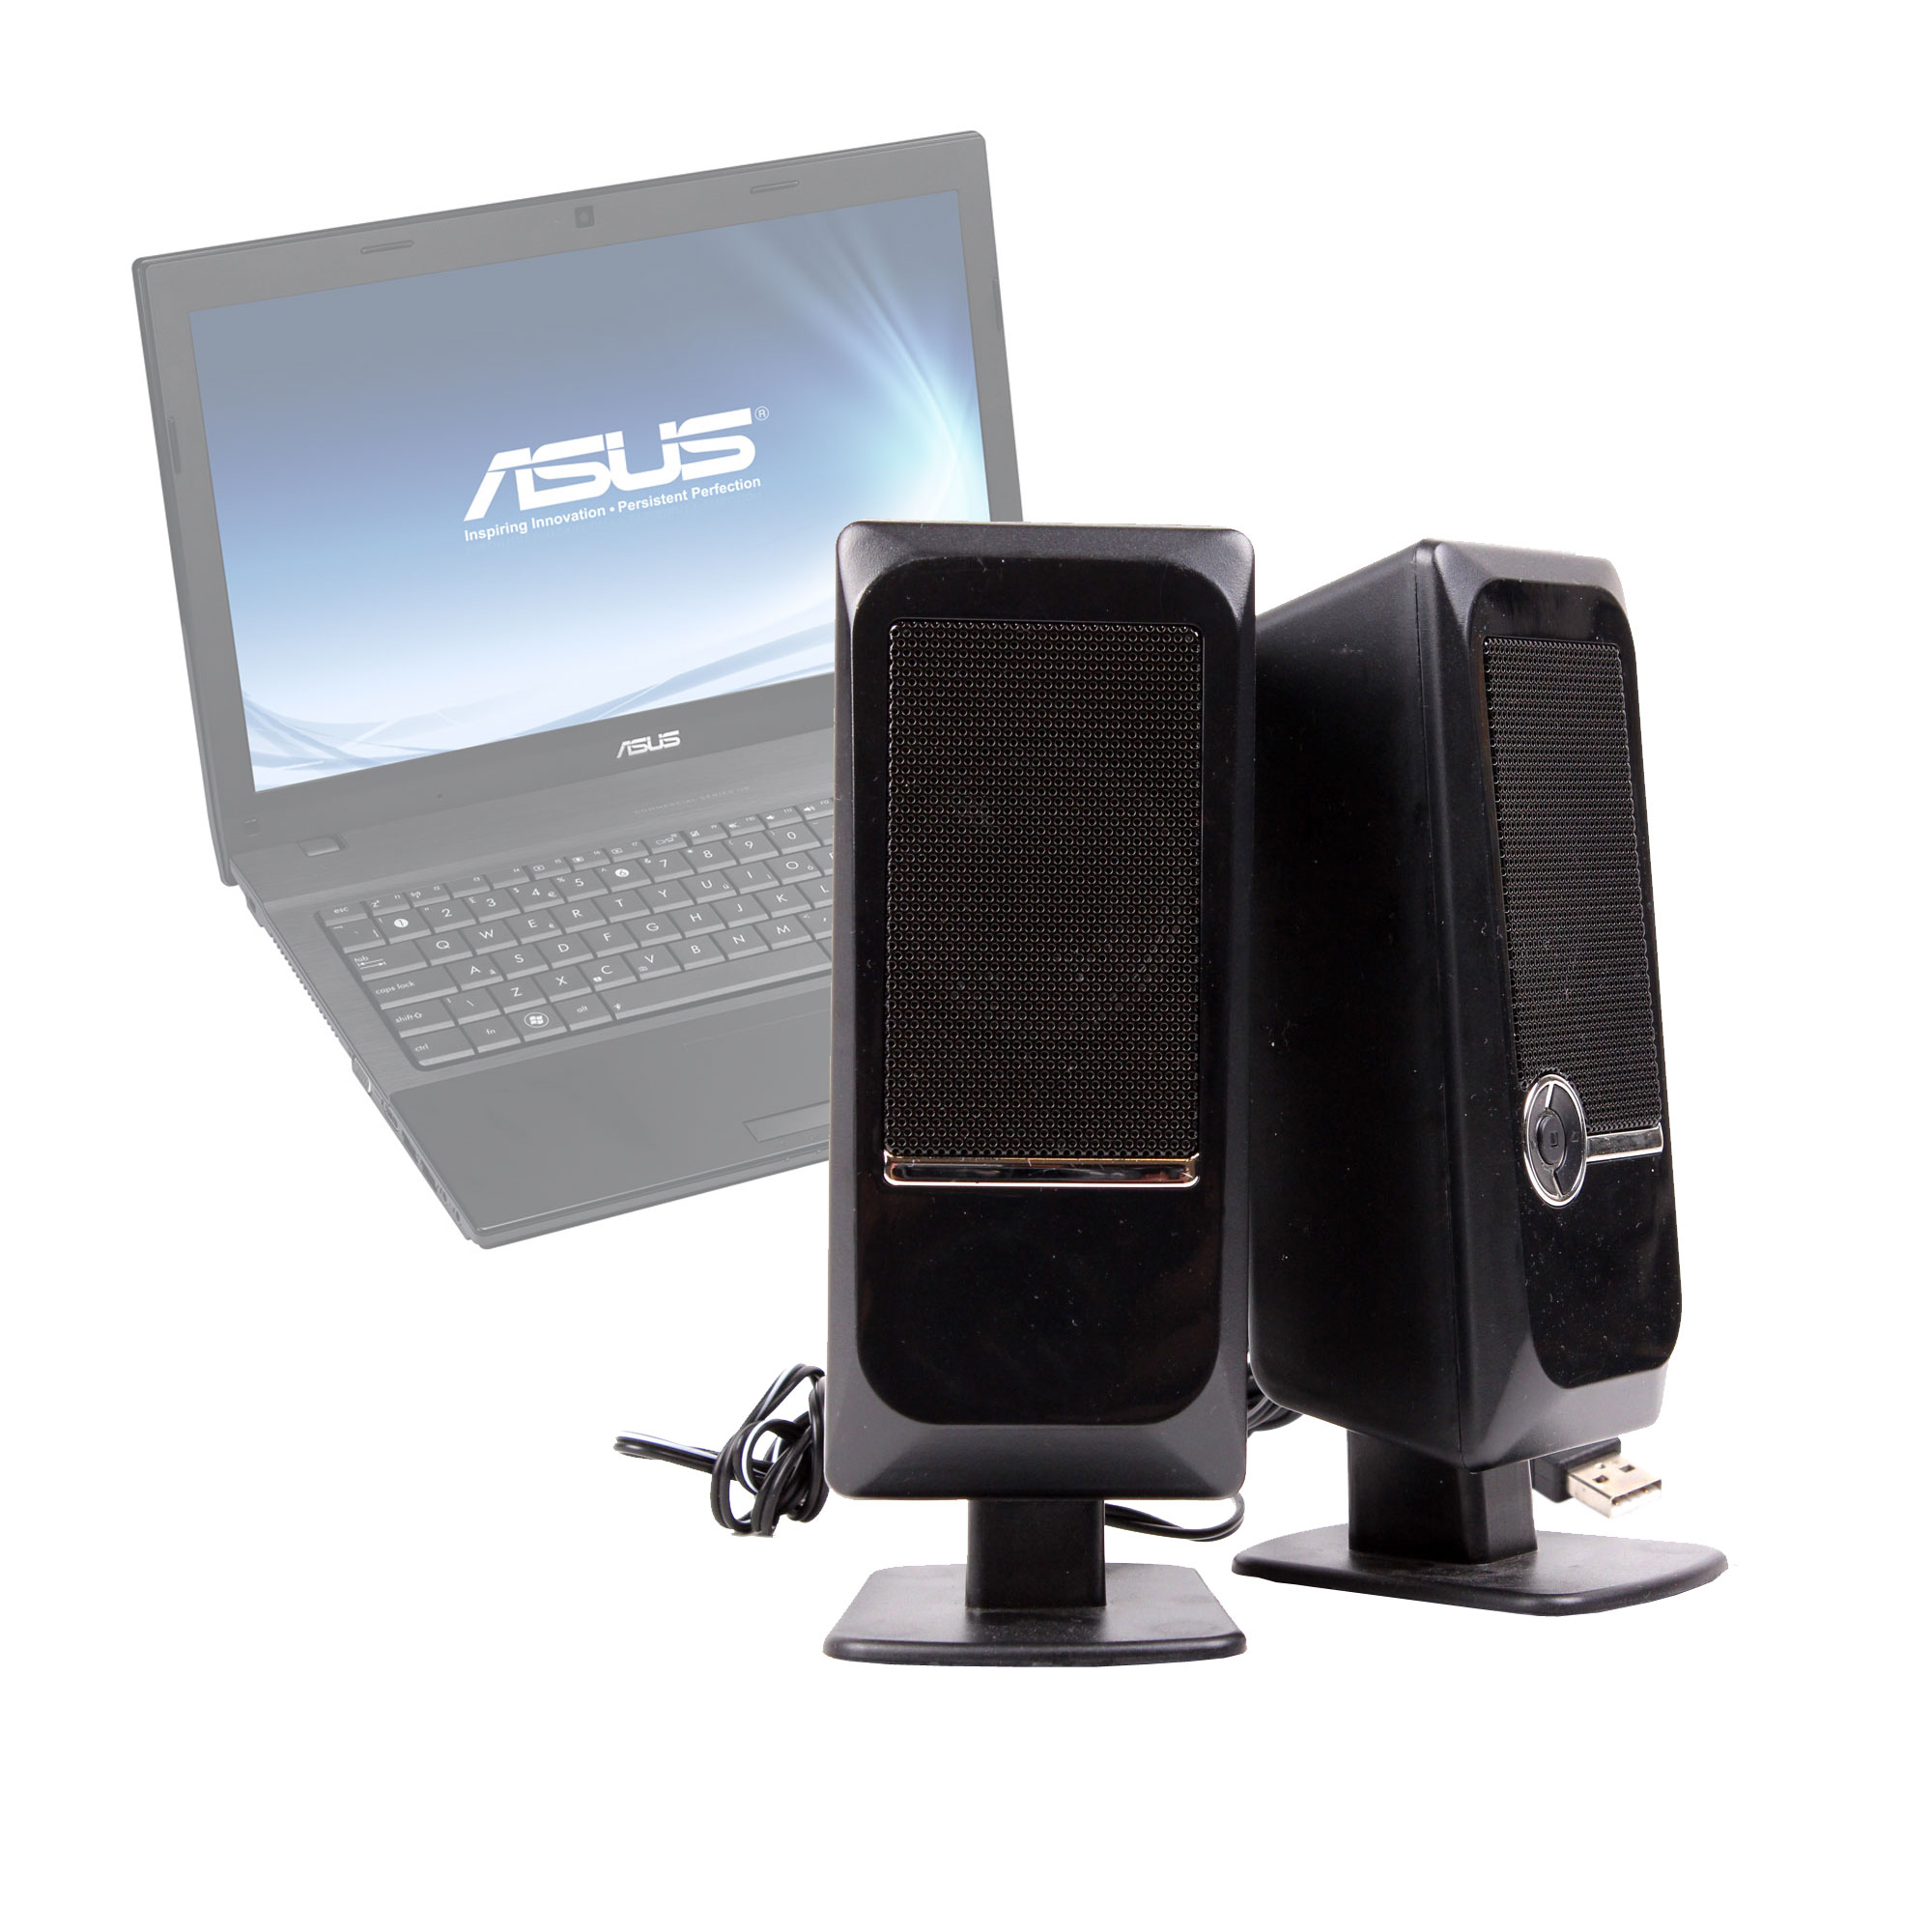 enceintes connexion usb pour ordinateurs portables asus p52 vx7 k72 series ebay. Black Bedroom Furniture Sets. Home Design Ideas